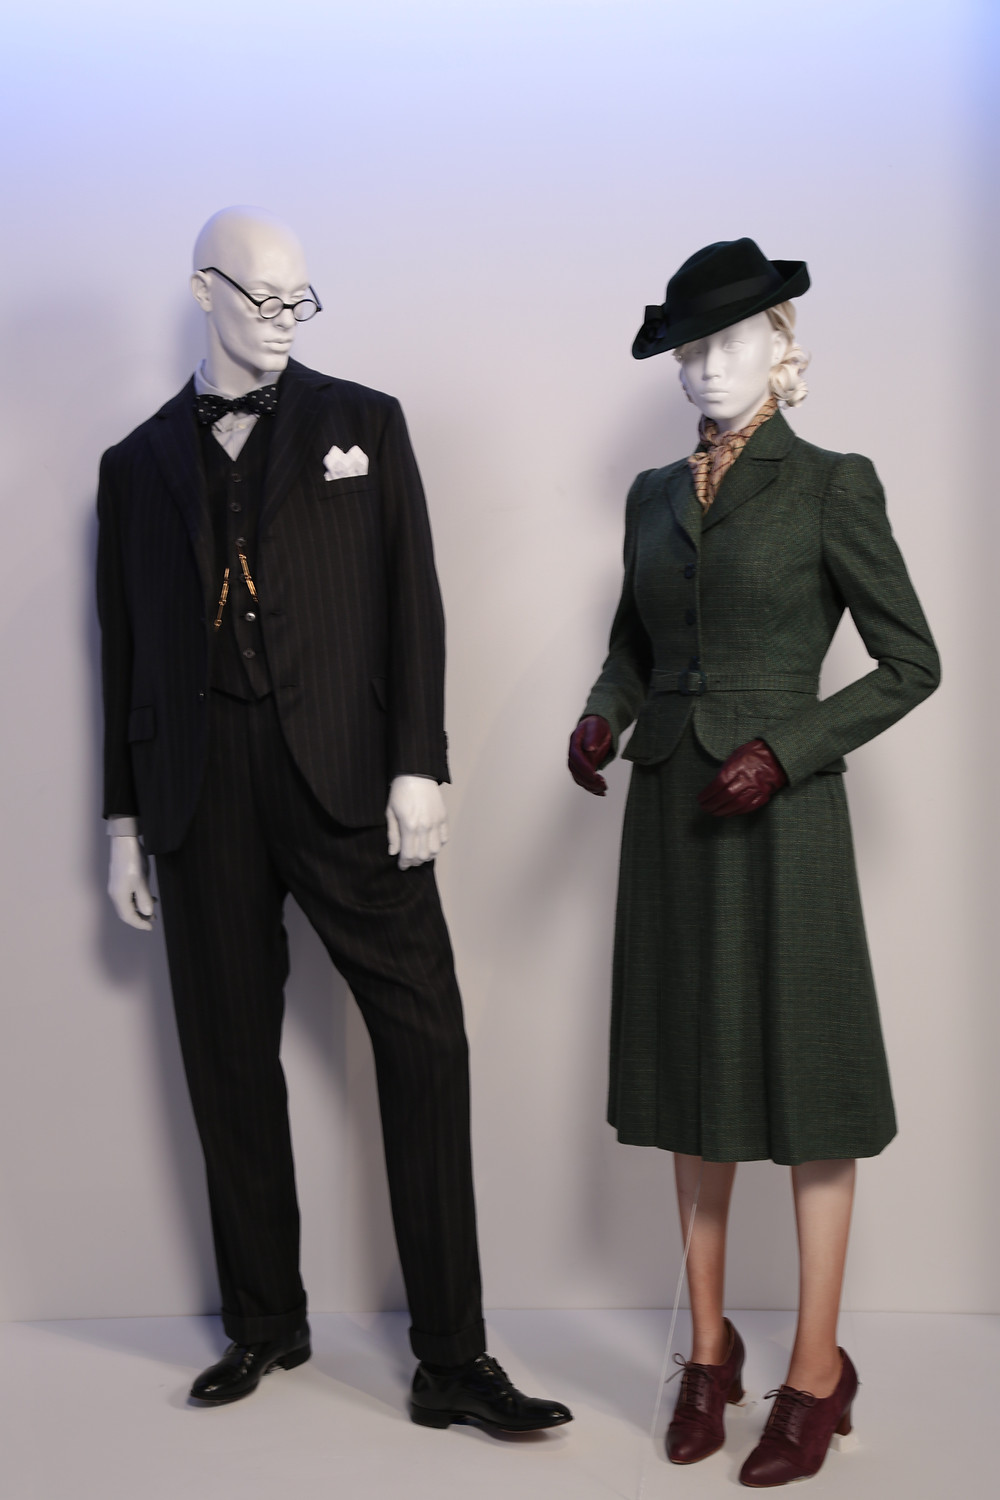 """Darkest Hour"" costumes by Jacqueline Durran, Academy Award nominee for Costume Design. (L to R) Costumes worn by actors: Gary Oldman as Winston Churchill, Lily James as Elizabeth Layton."